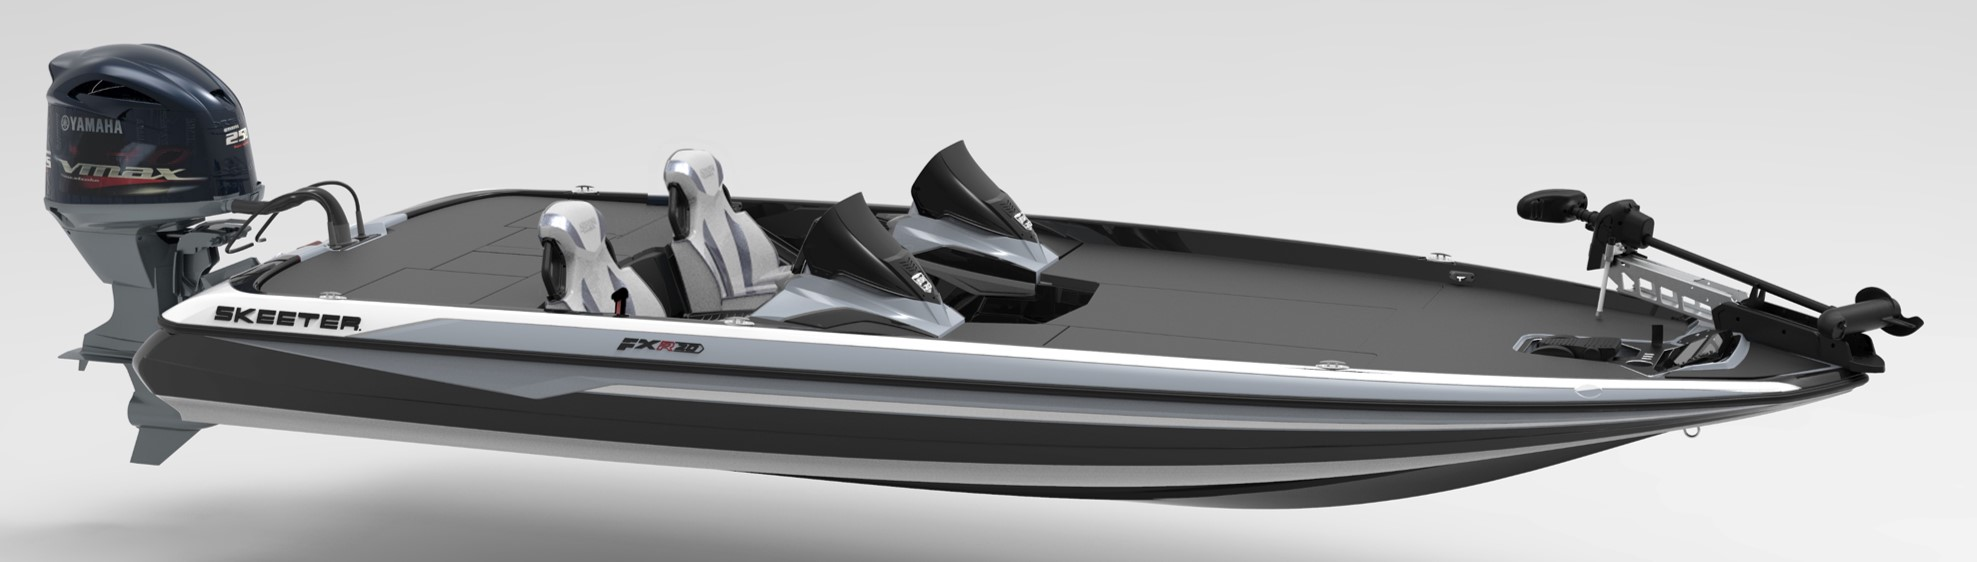 2021 SKEETER FXR20 Limited (On order, secure yours today!)